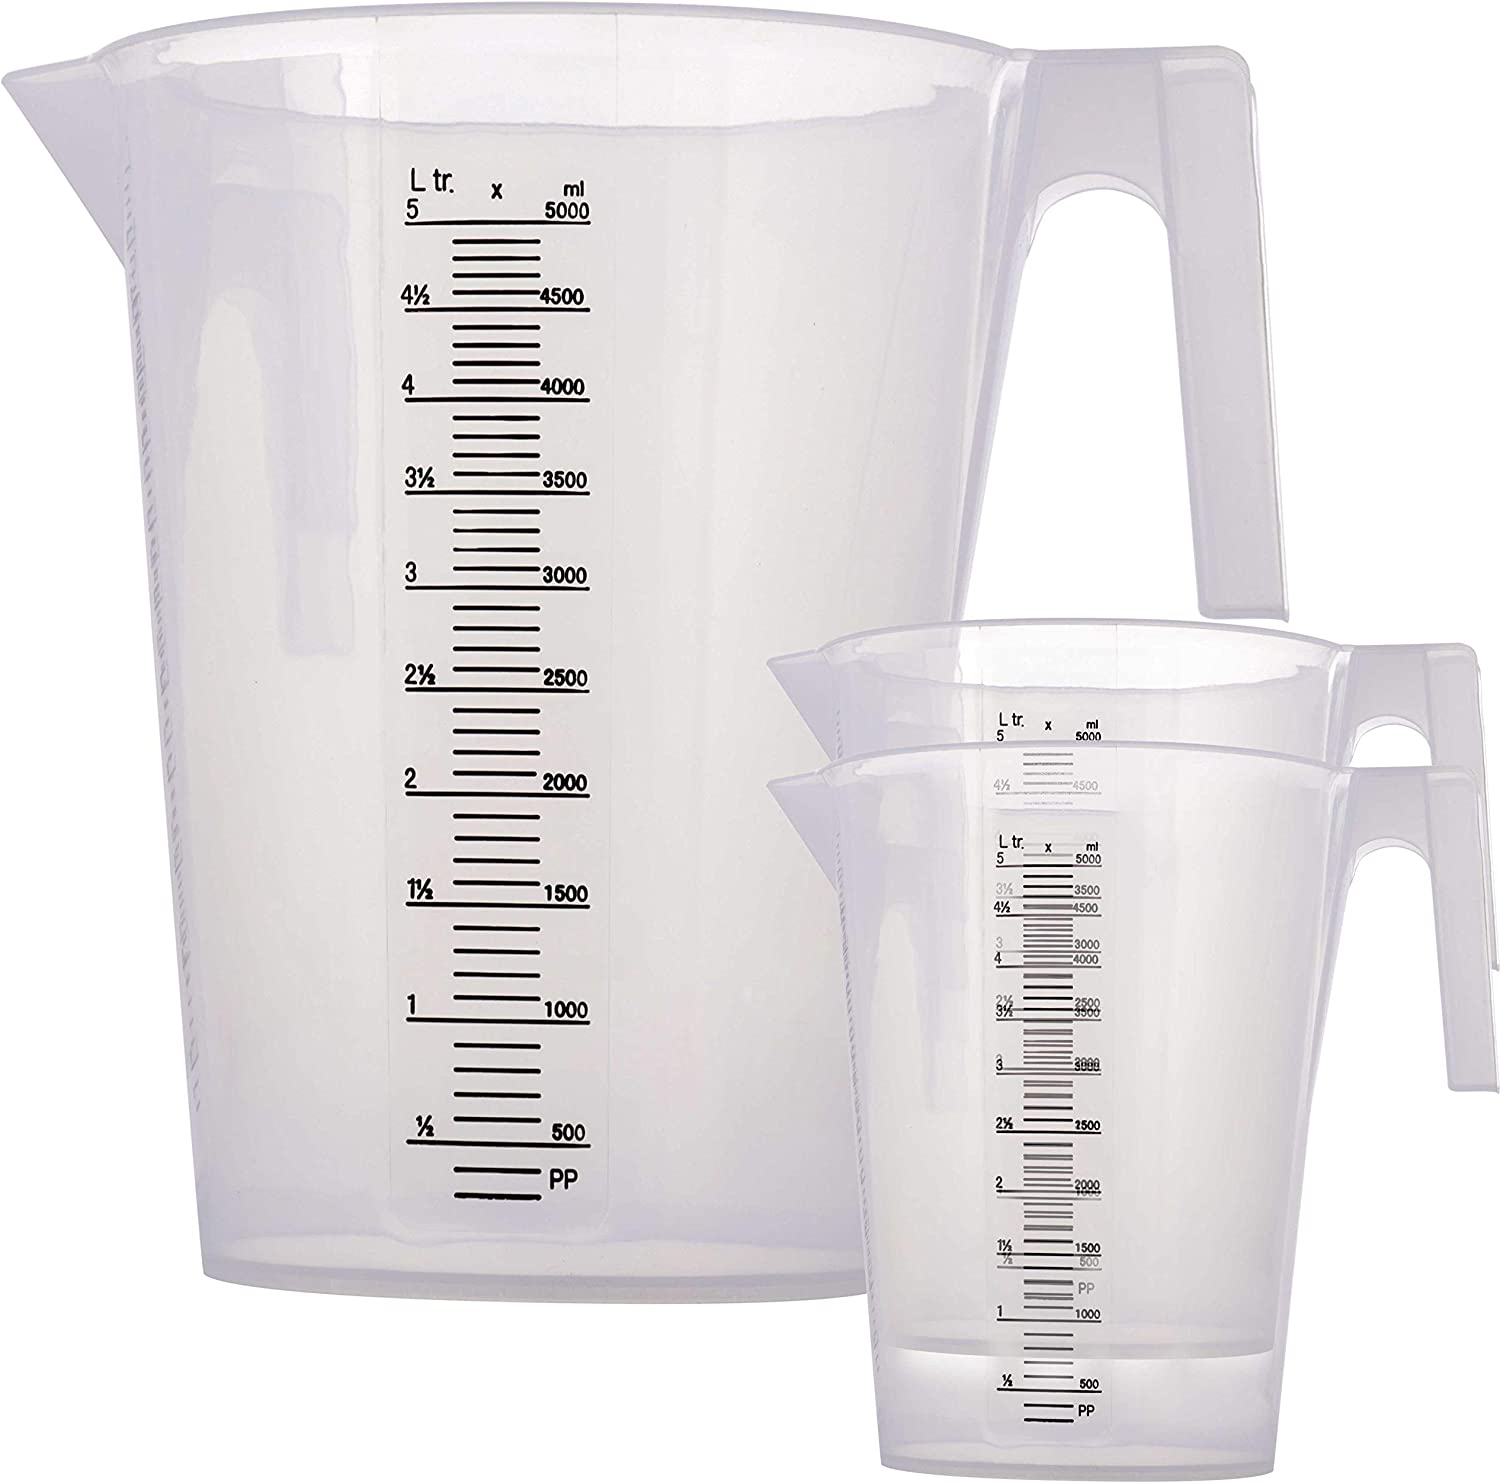 TCP Global 5 Liter (5000ml) Plastic Graduated Measuring and Mixing Pitcher (Pack of 3) - Holds 5 Quarts 1.25 Gallons- Pouring Cup, Measure & Mix Paint, Resin, Epoxy, Kitchen Cooking Baking Ingredients